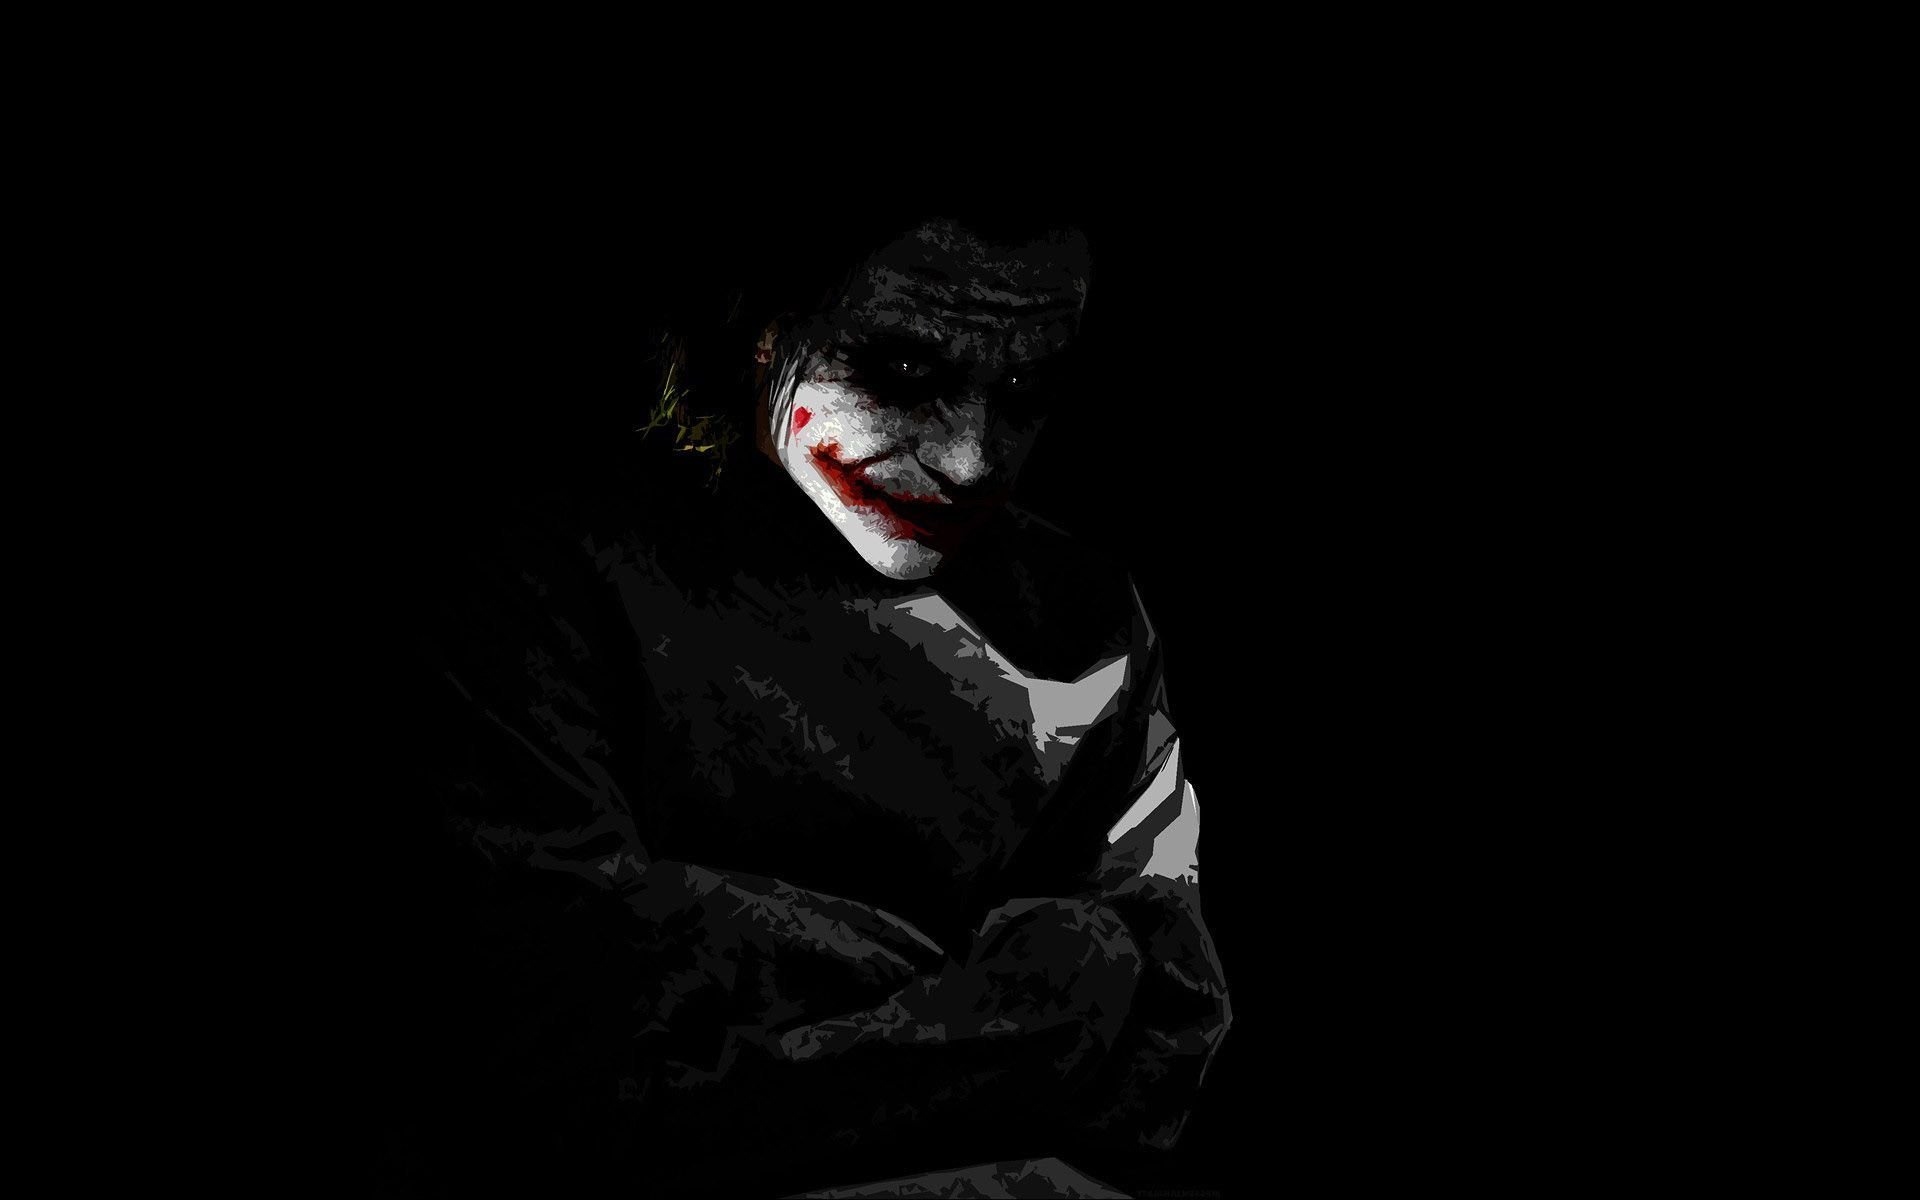 Scary Joker Wallpapers - Top Free Scary ...